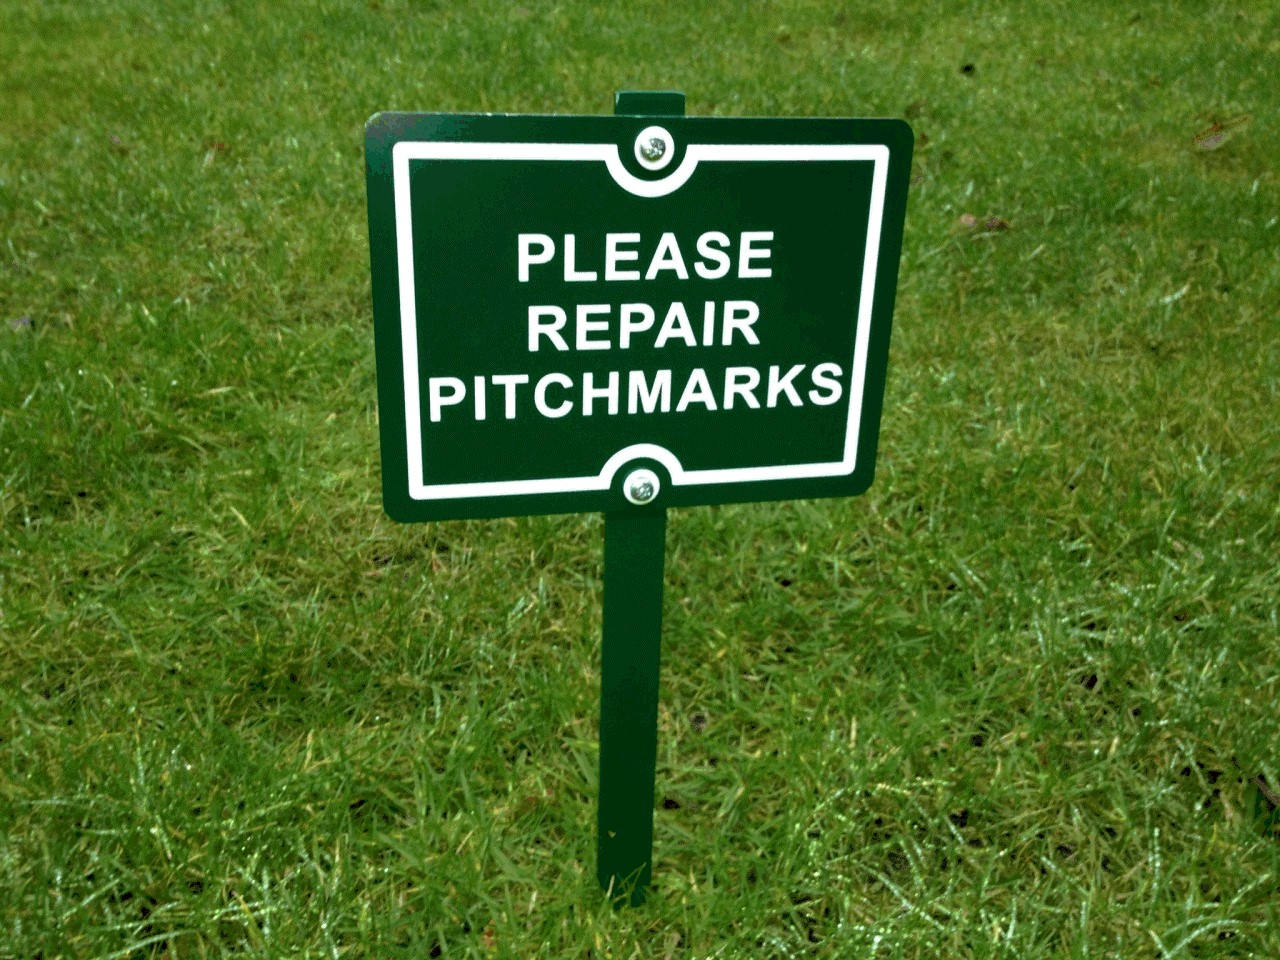 Please Repair Pitchmarks